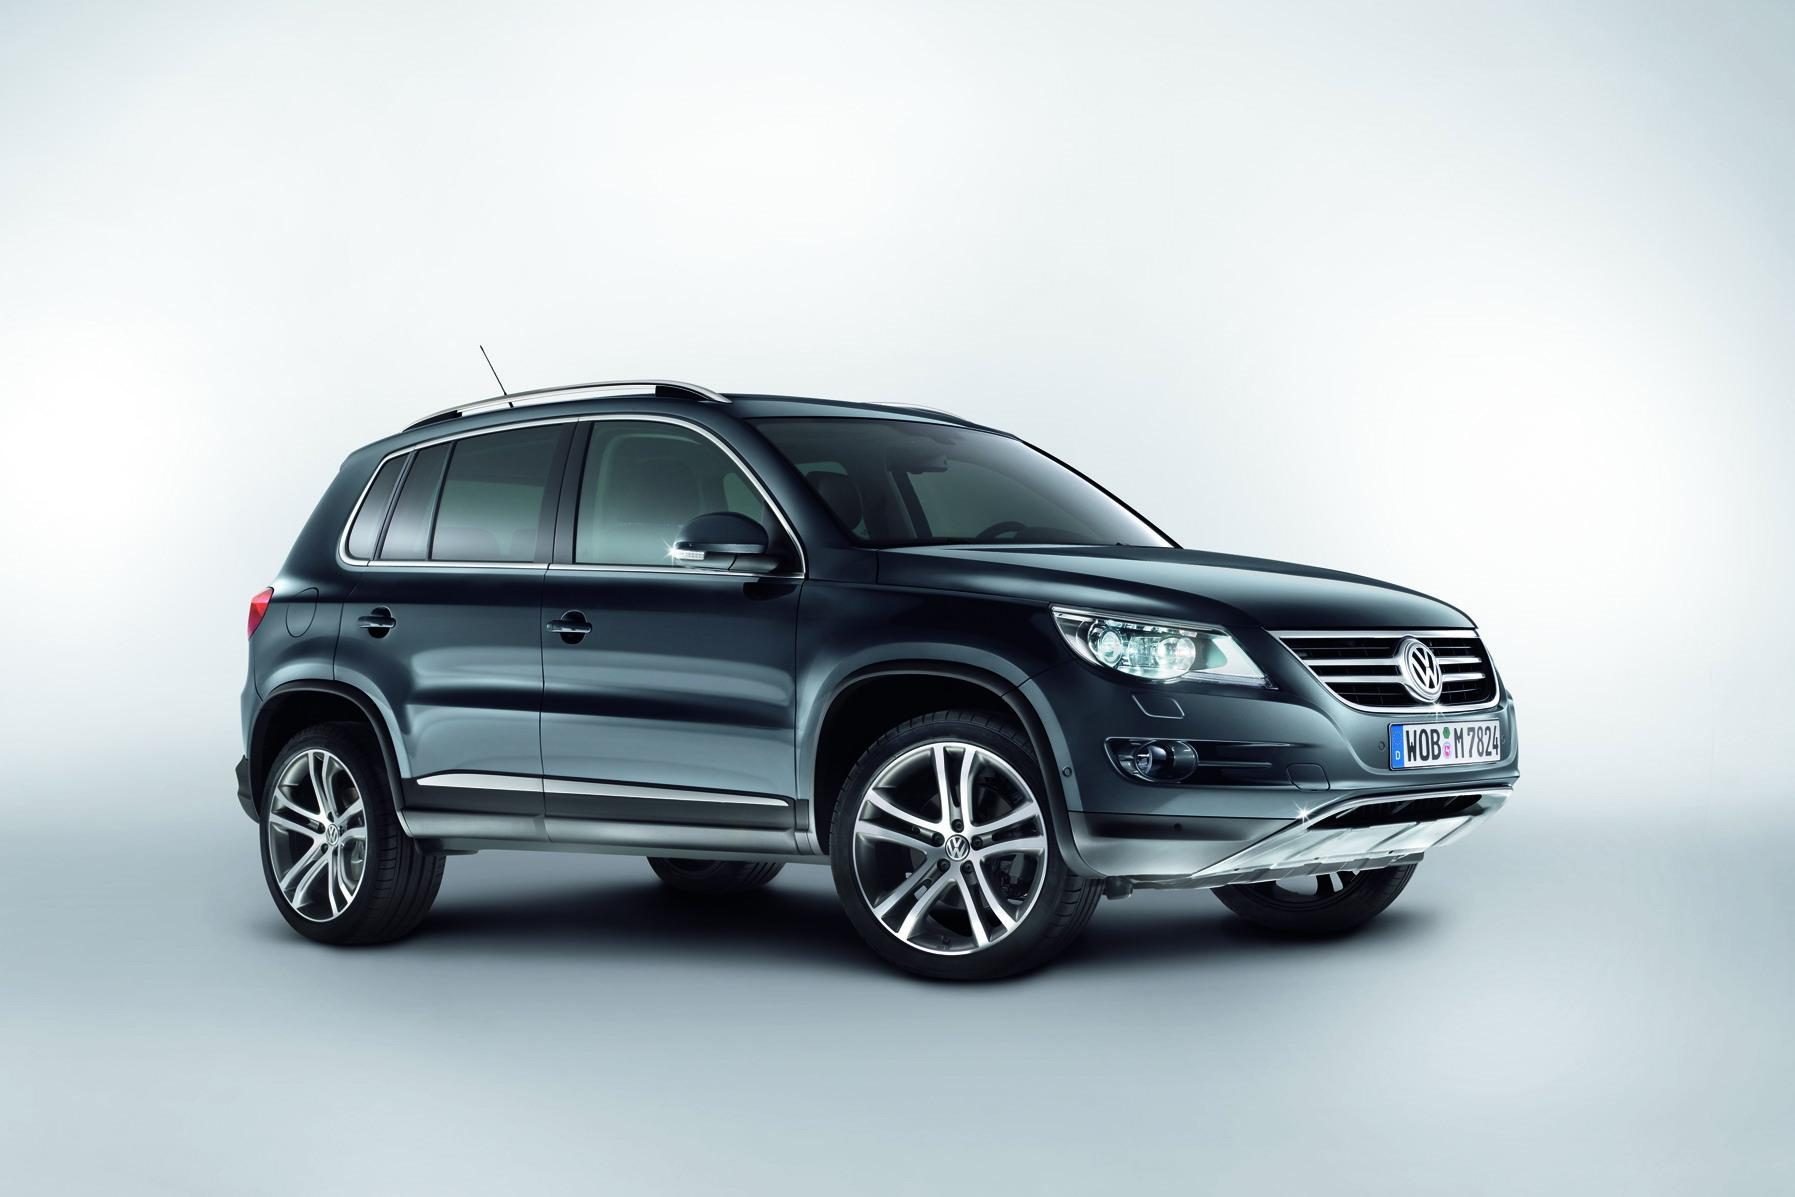 2010 volkswagen tiguan track avenue review top speed. Black Bedroom Furniture Sets. Home Design Ideas